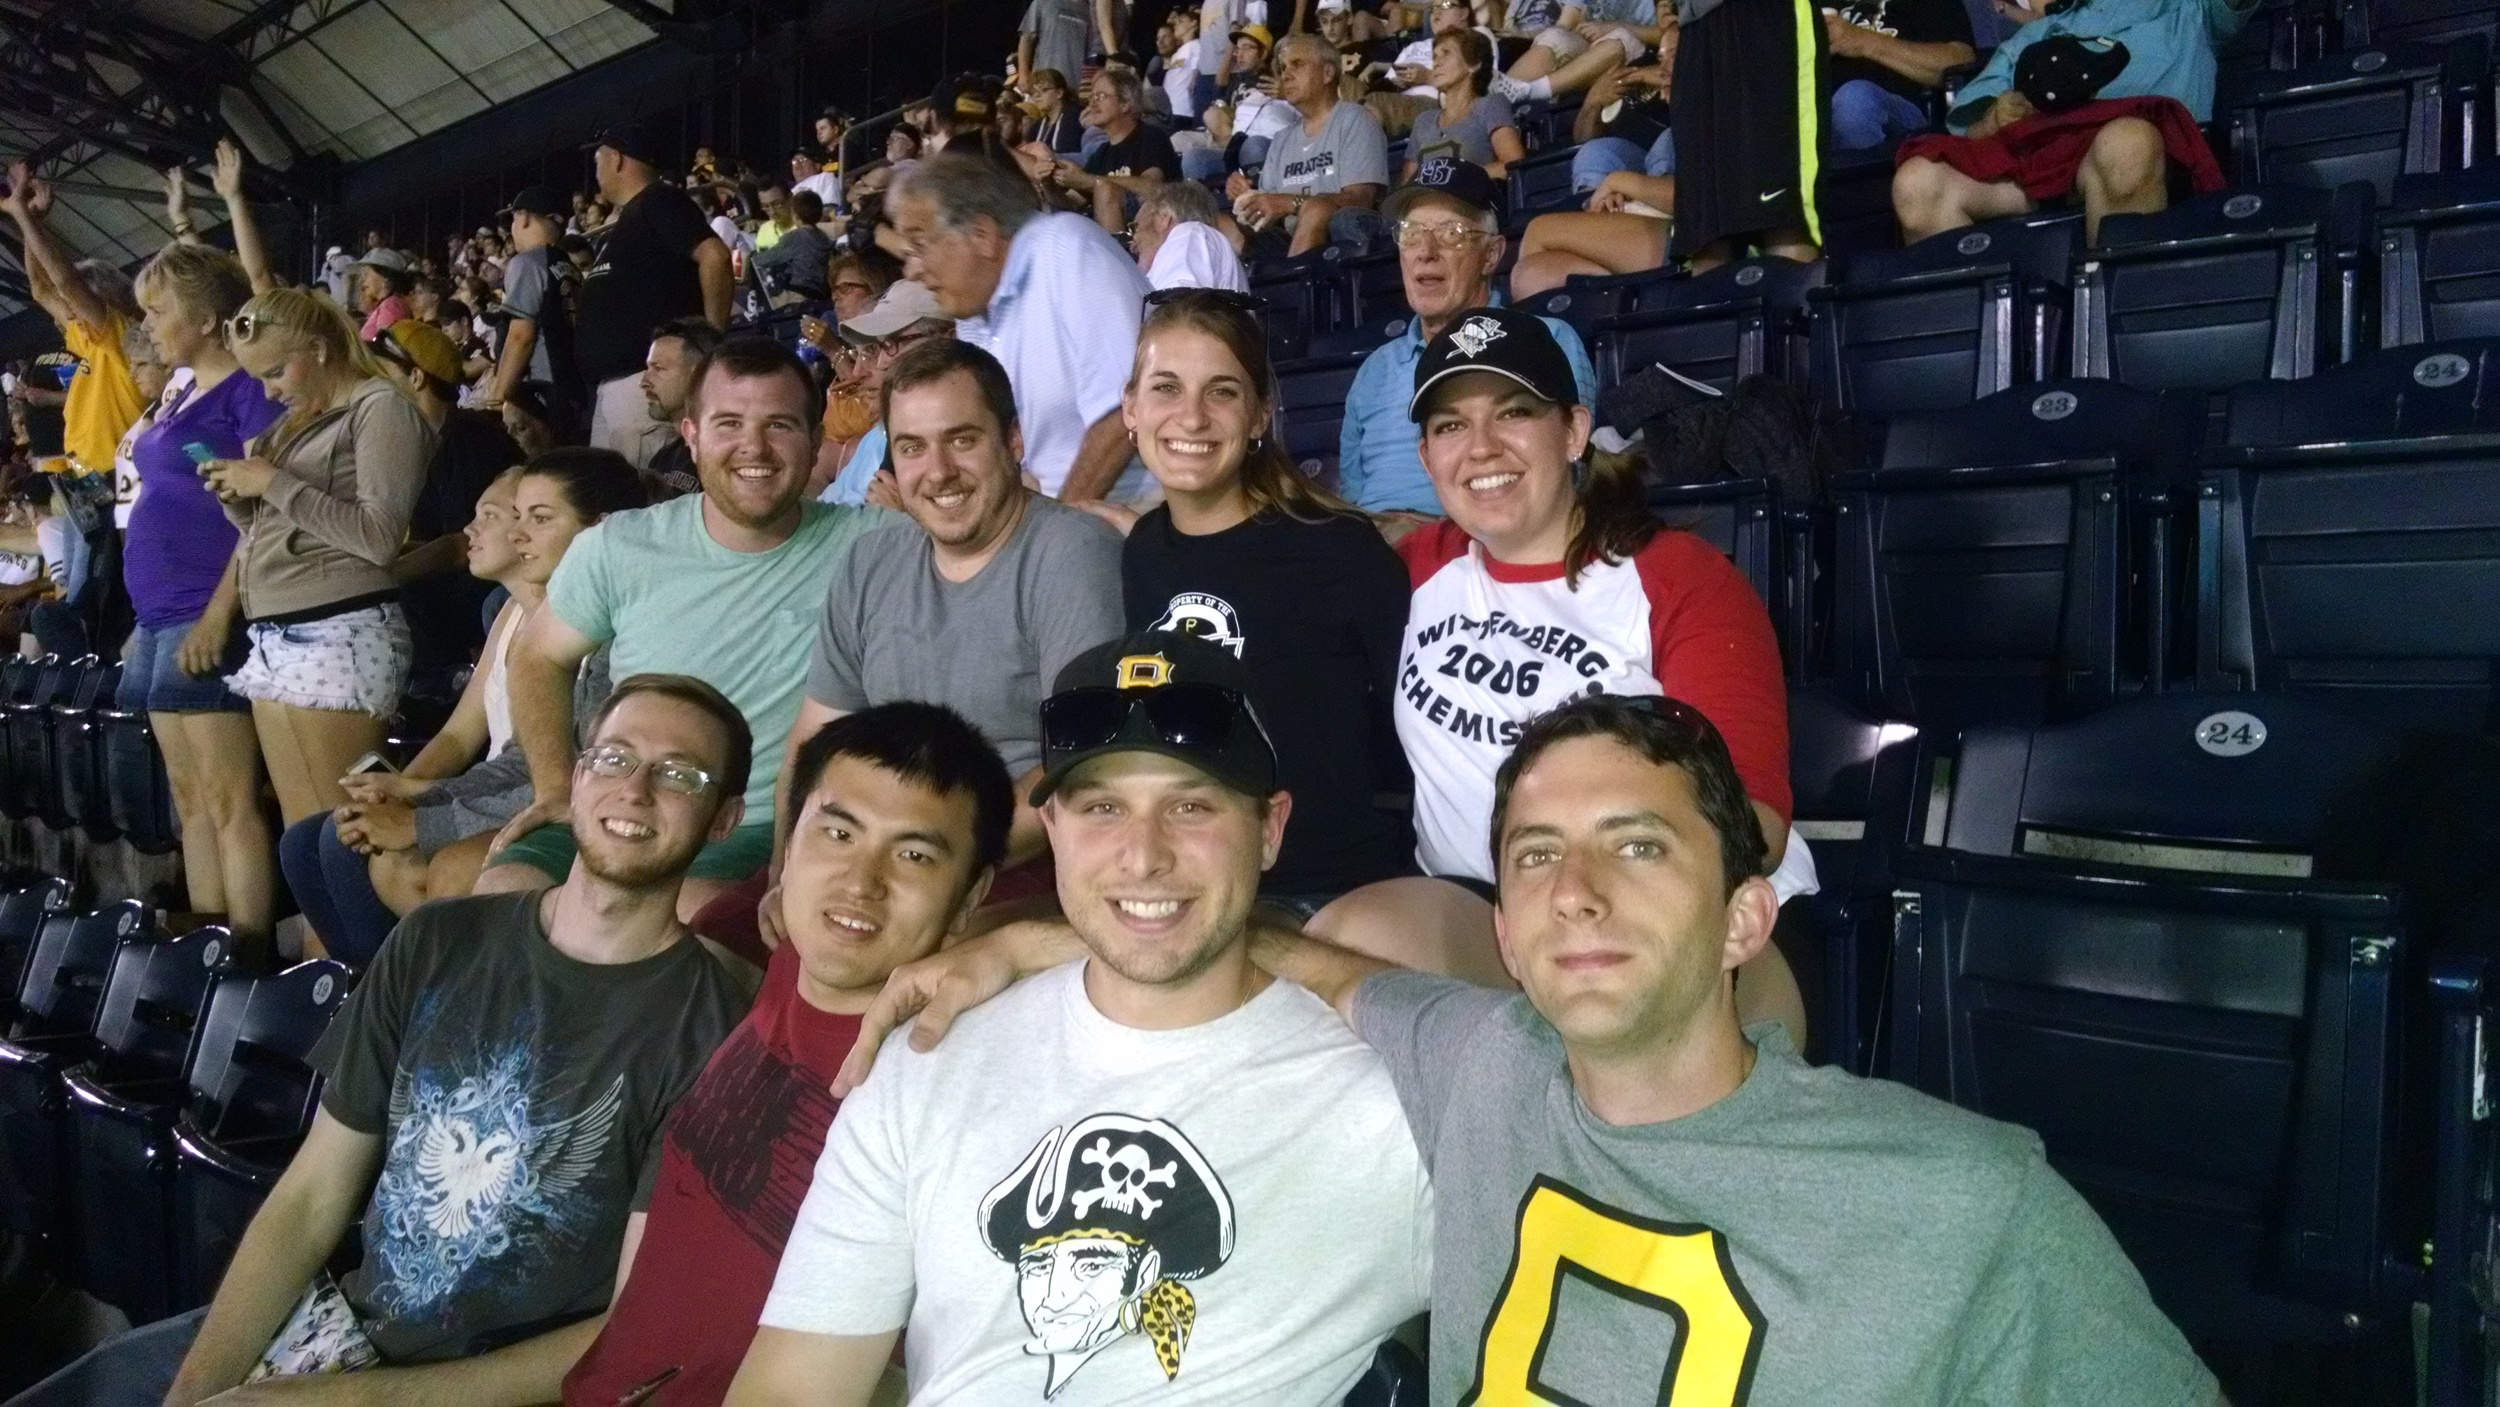 Pirates Game Summer 2014